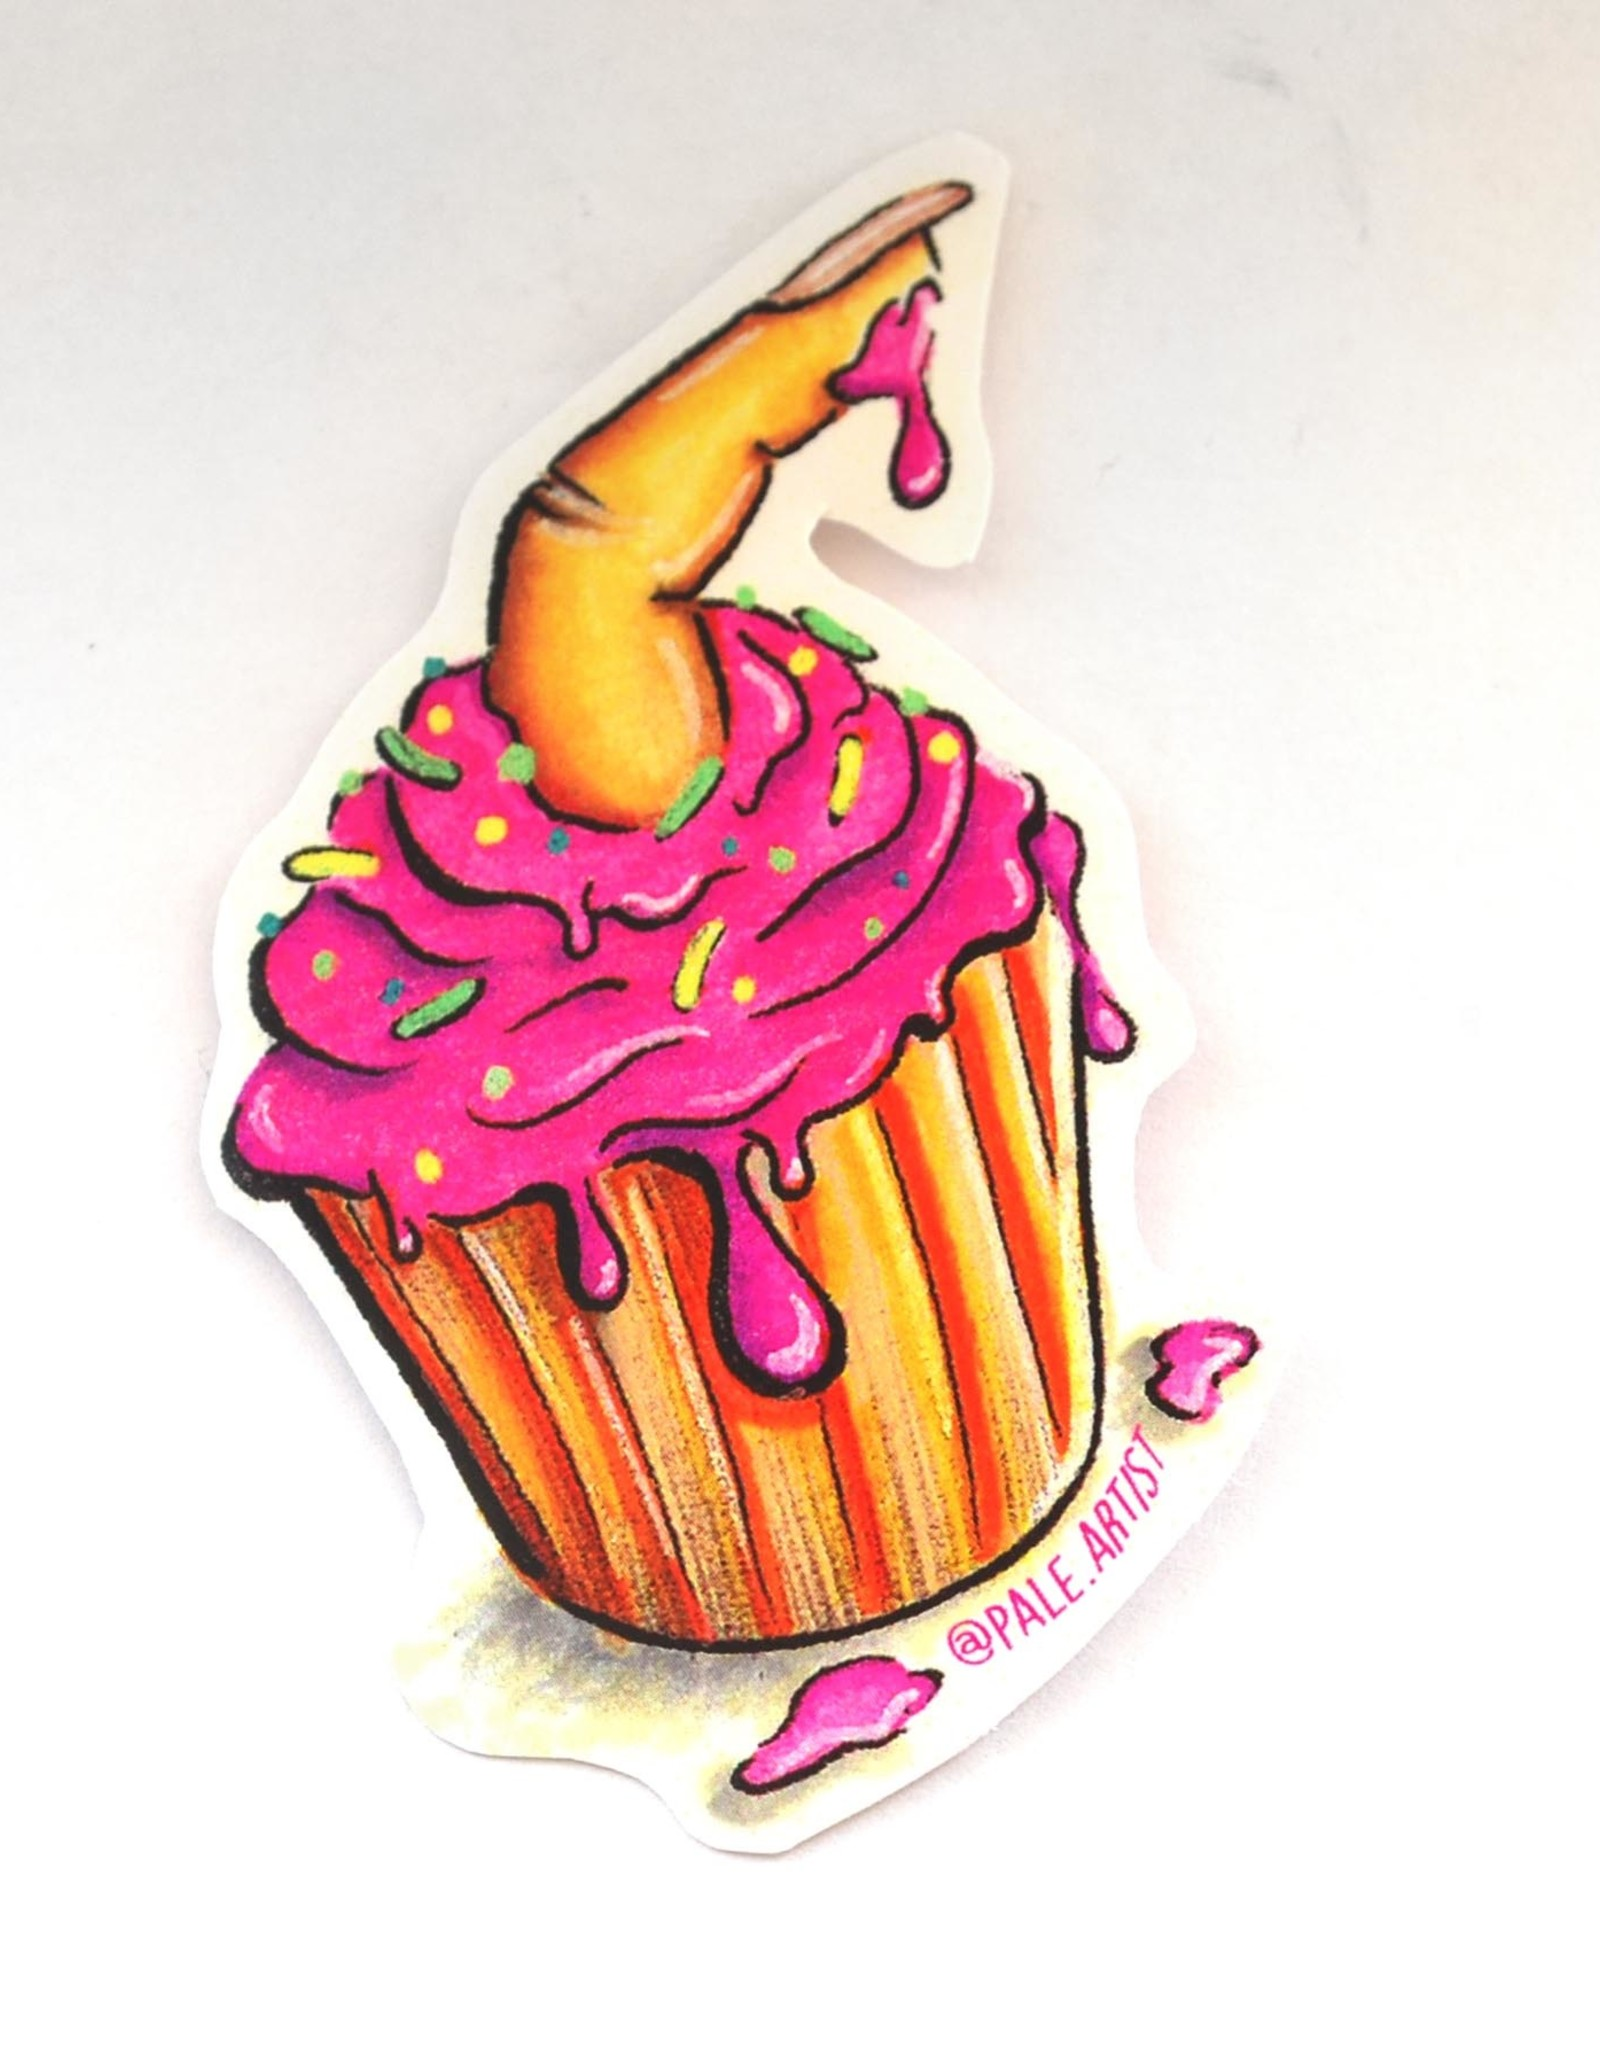 Pale Artist Cupcake Vinyl Sticker by Pale Artist